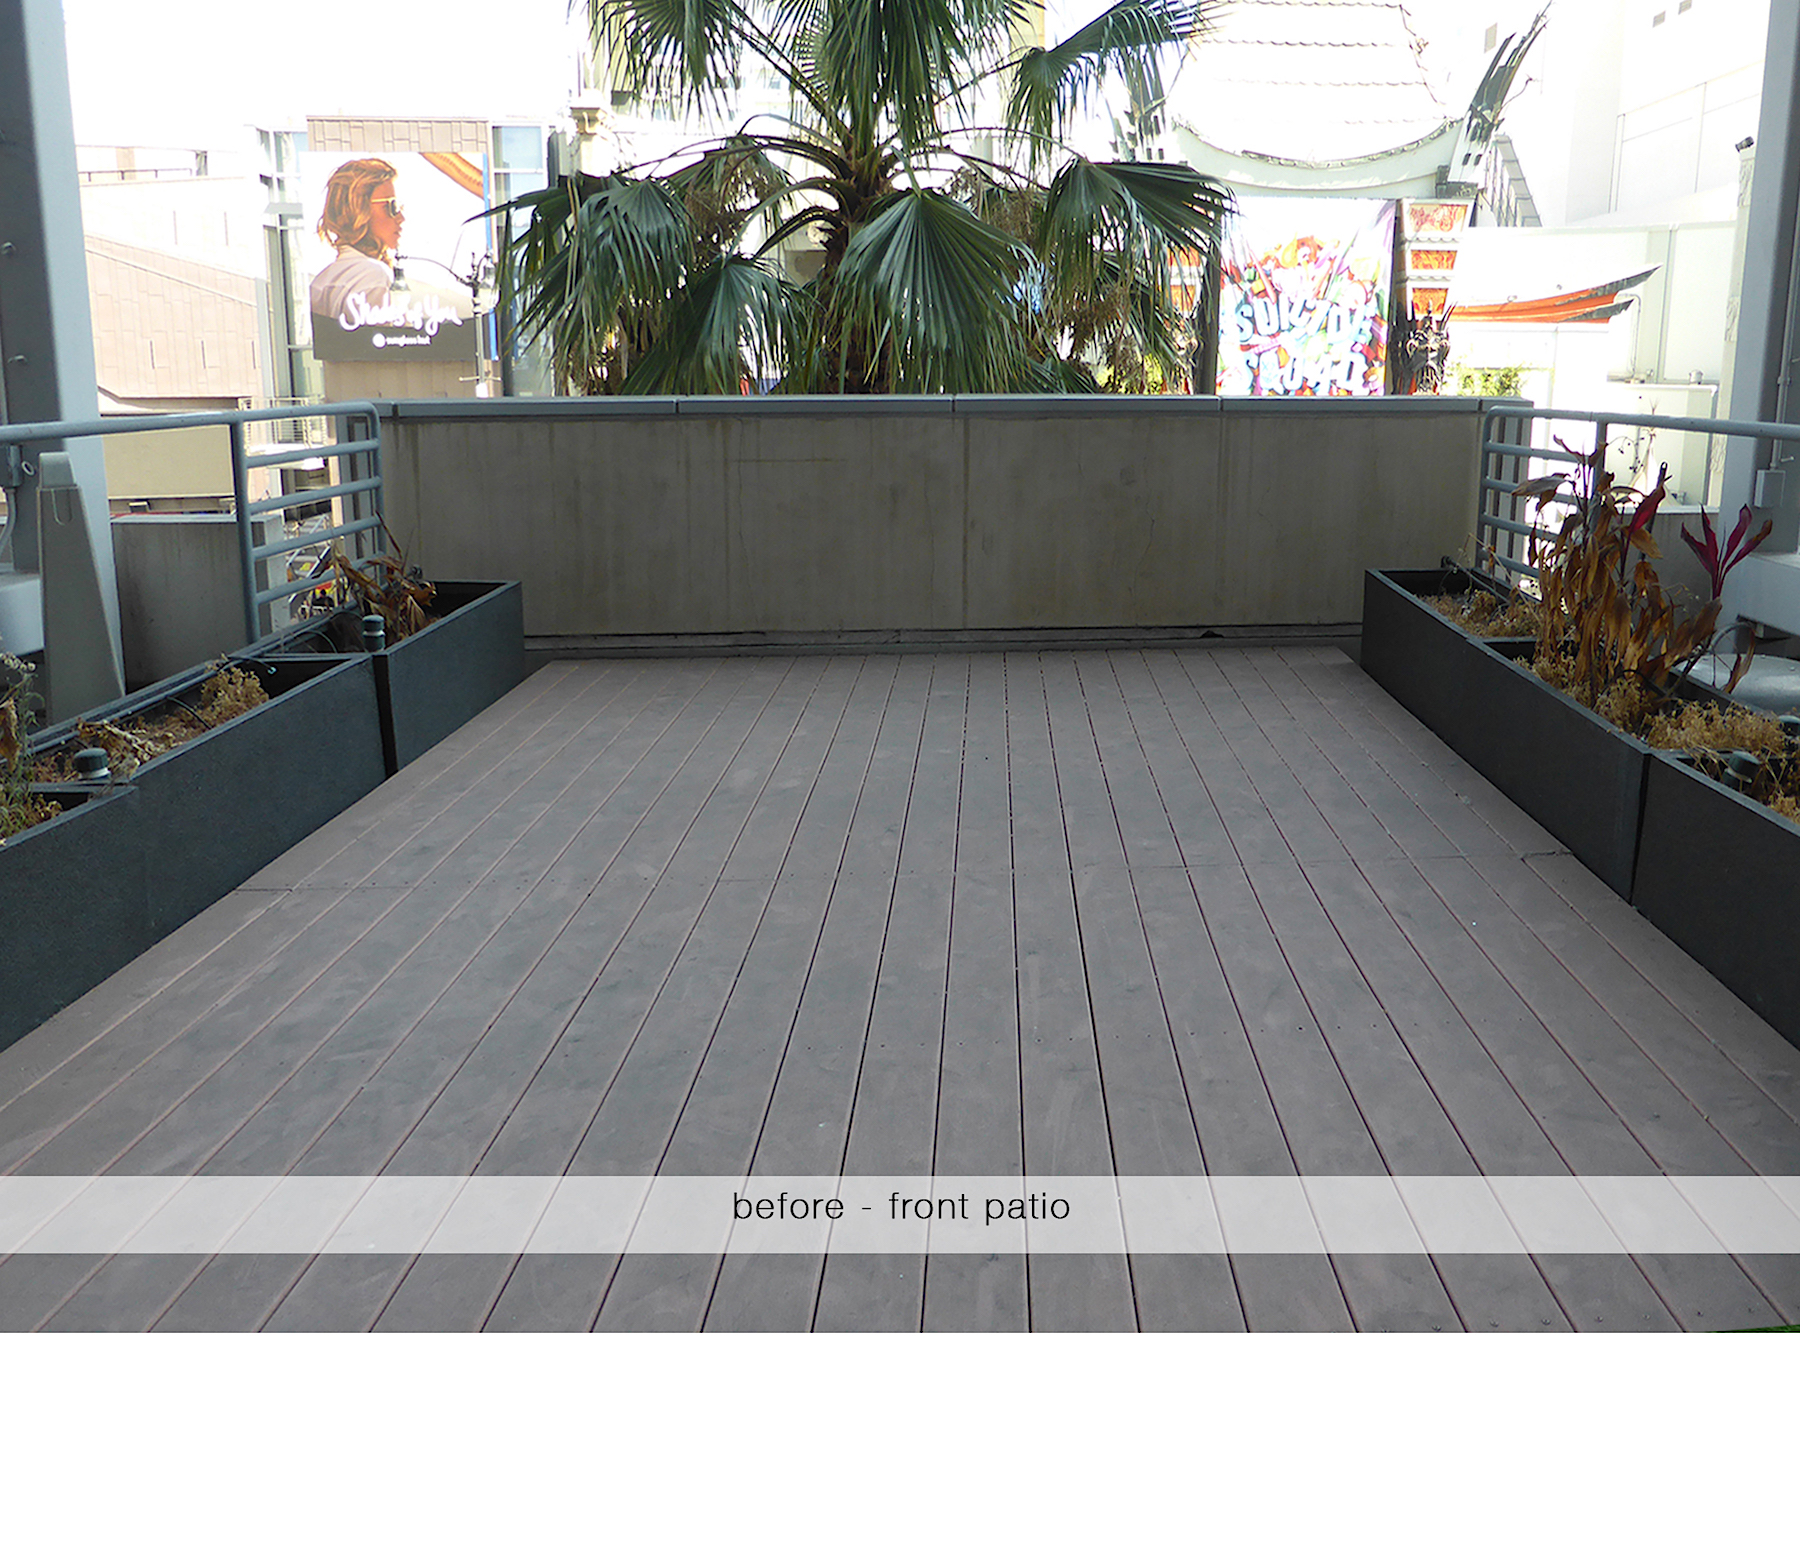 before - front patio